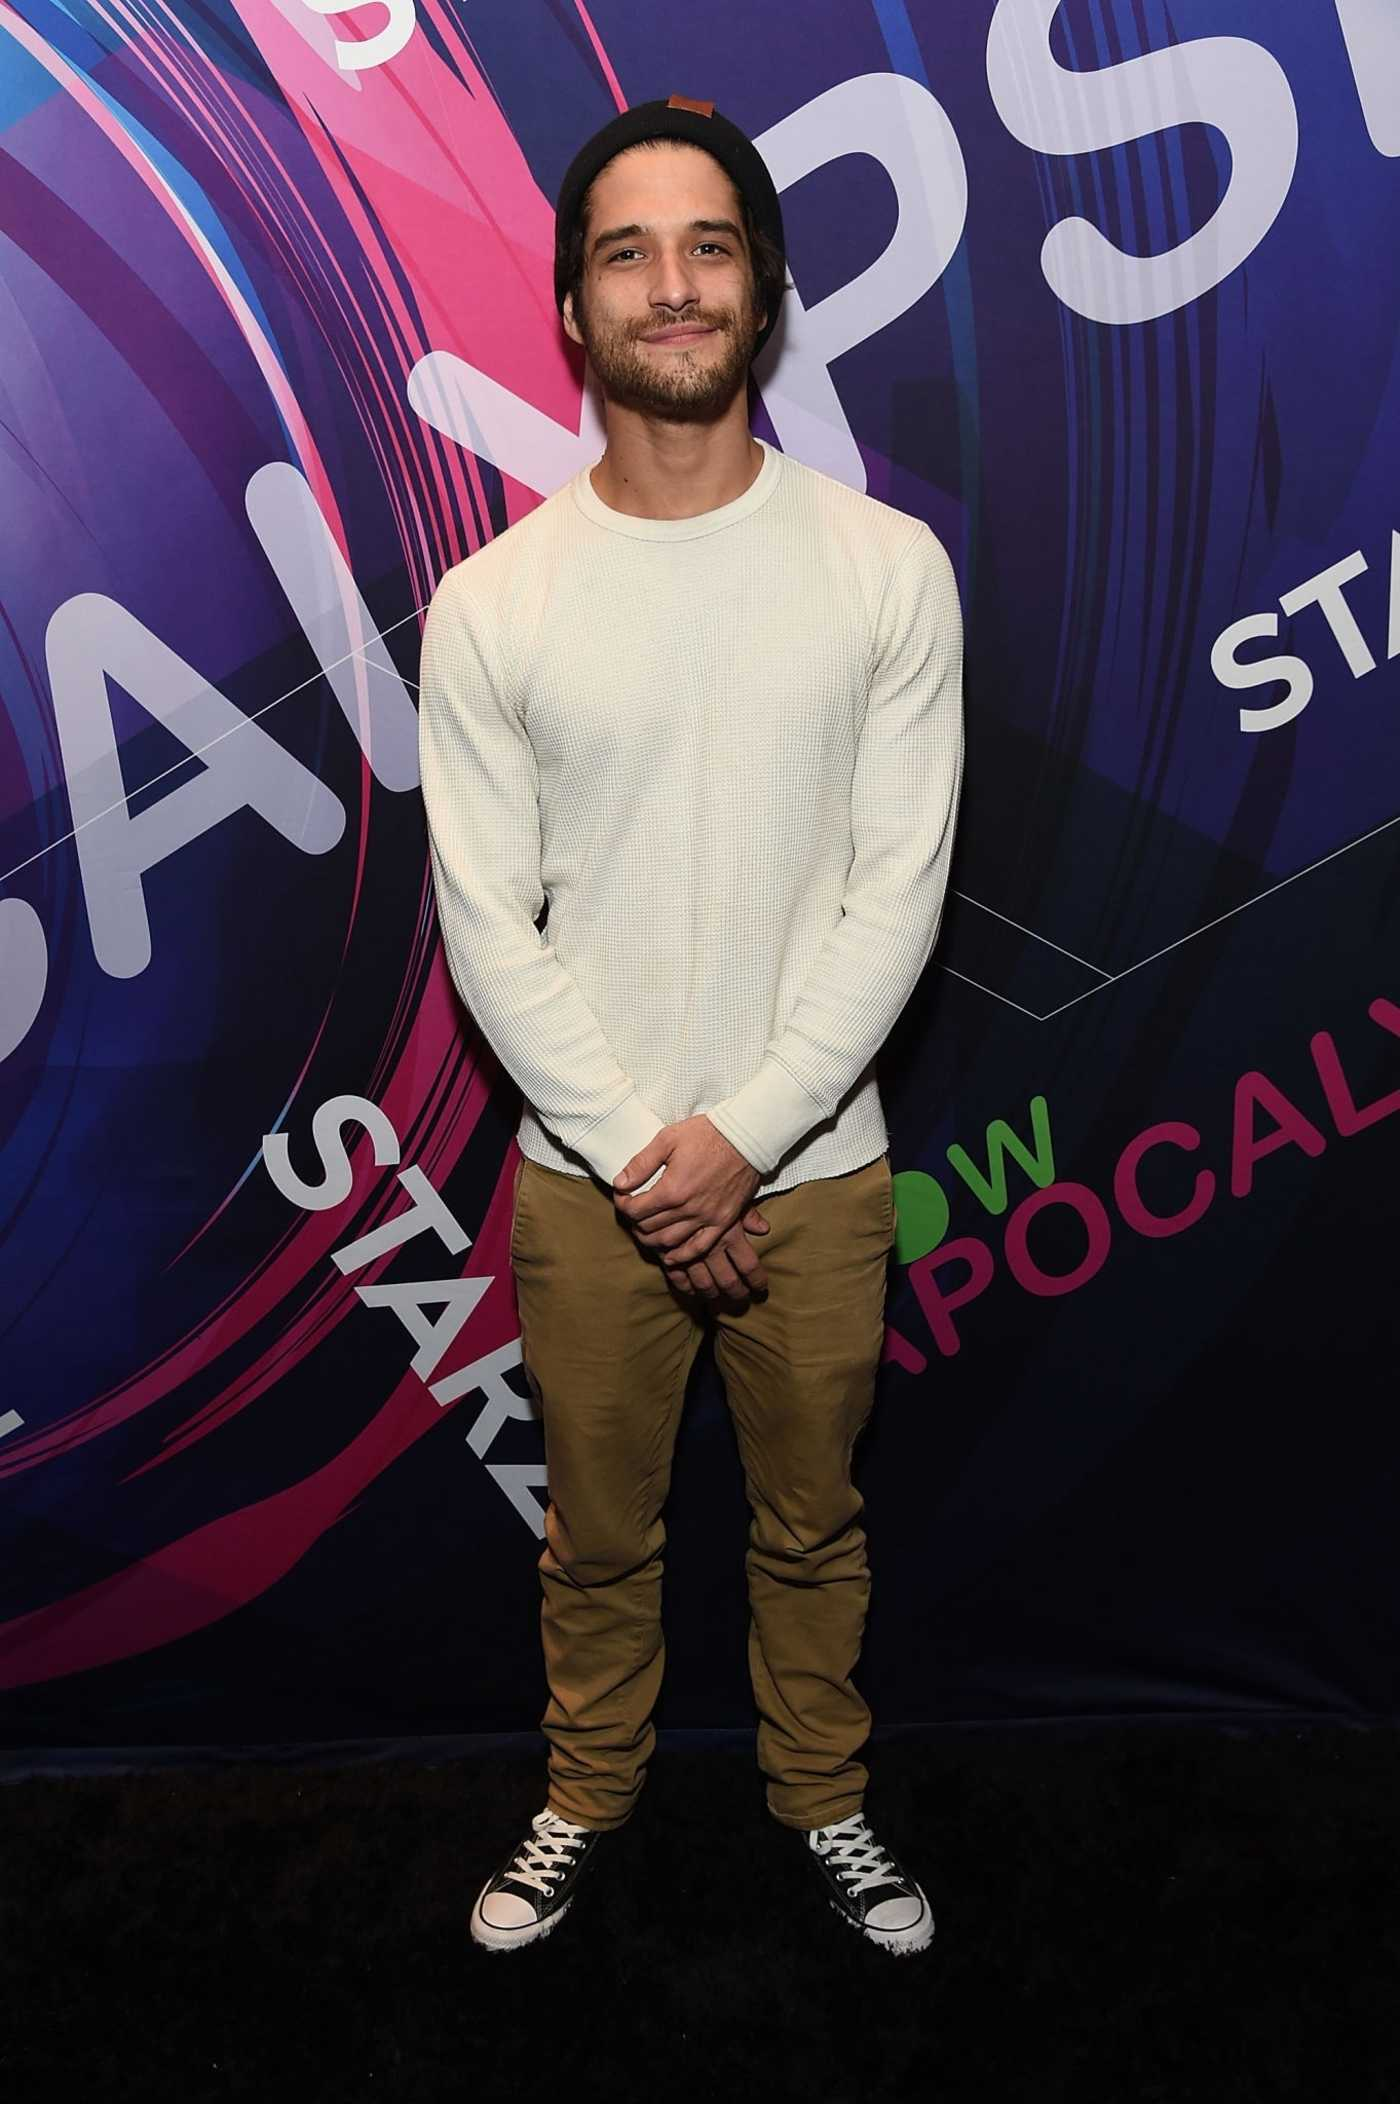 Tyler Posey Promotes Now Apocalypse During Sundance Film Festival in Park City 01/27/2019